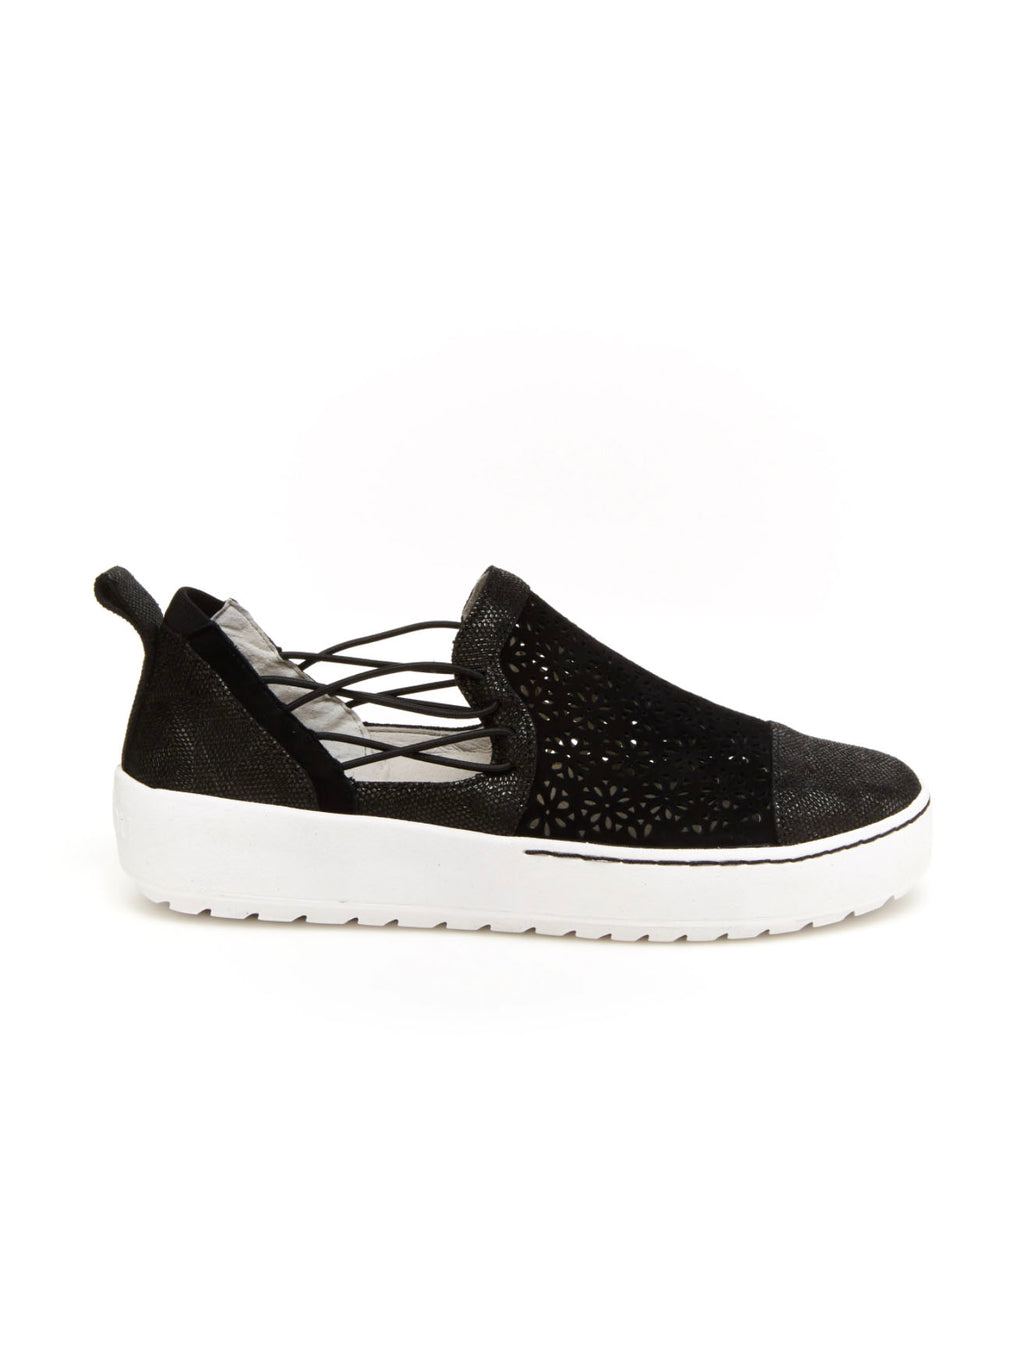 Jambu Erin Slip On in Black